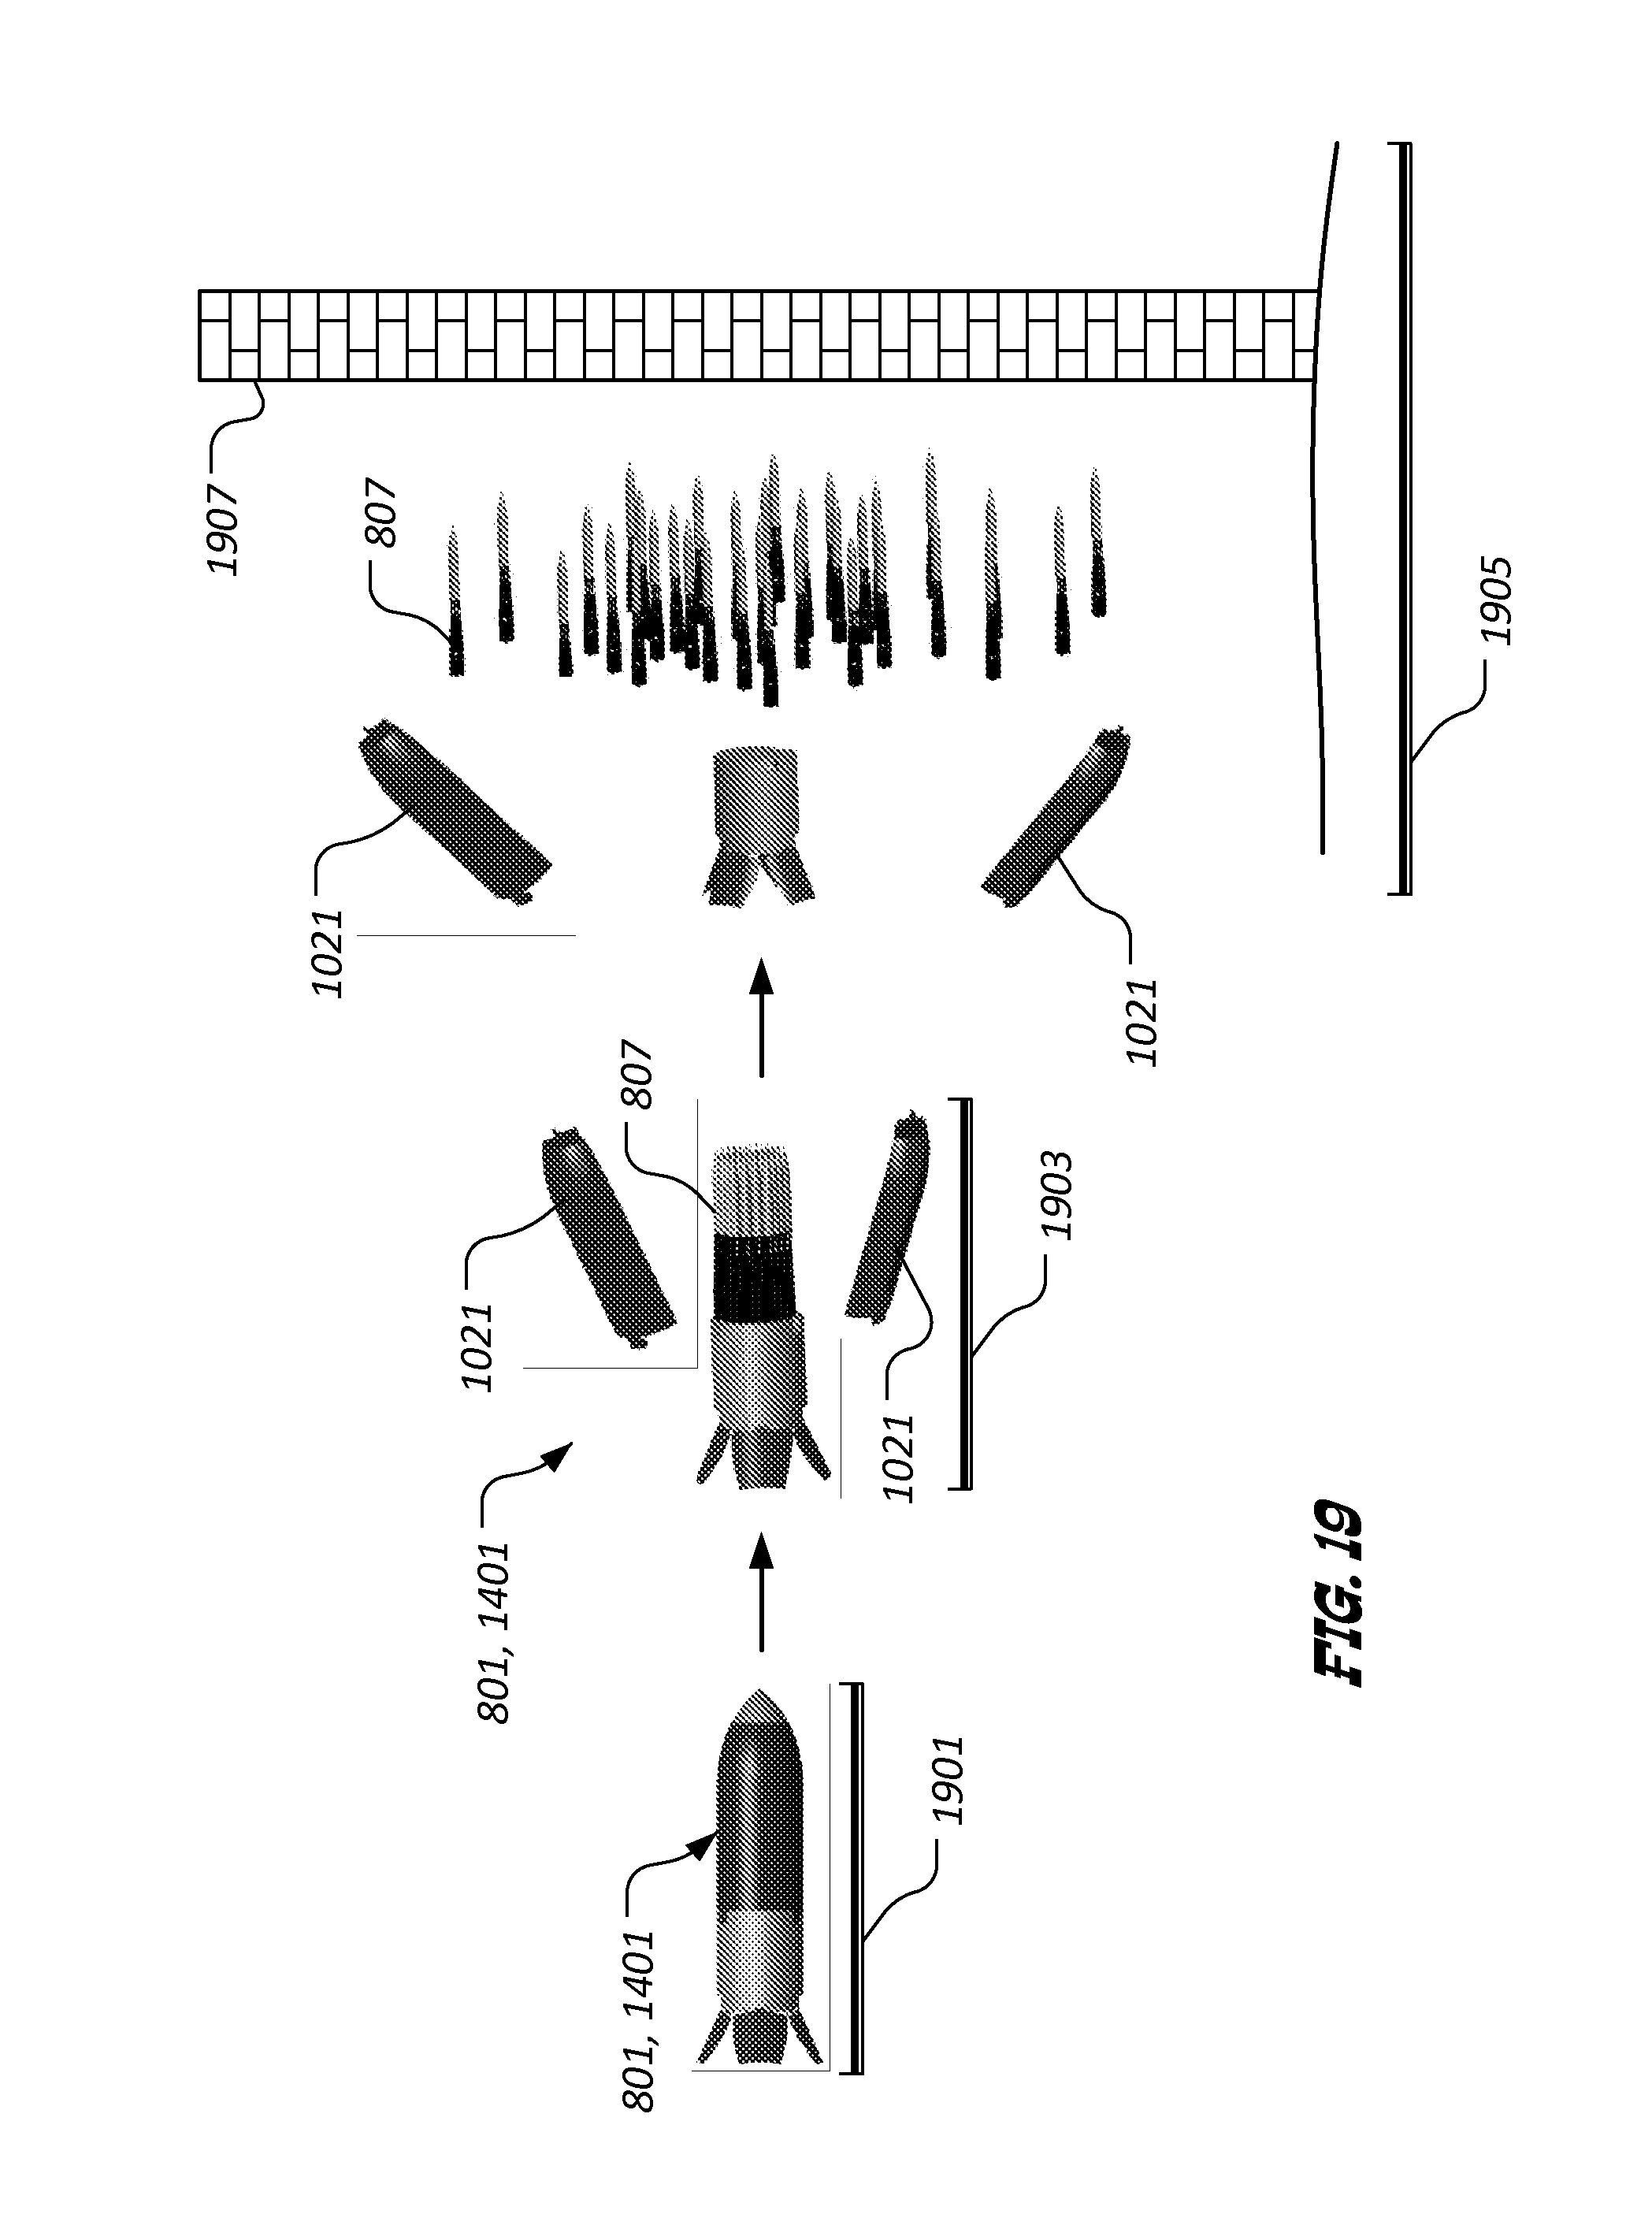 Patent Us 9068807 B1 Stun Gun Circuit Diagram For Together With Sa 26 Furthermore 0 Petitions